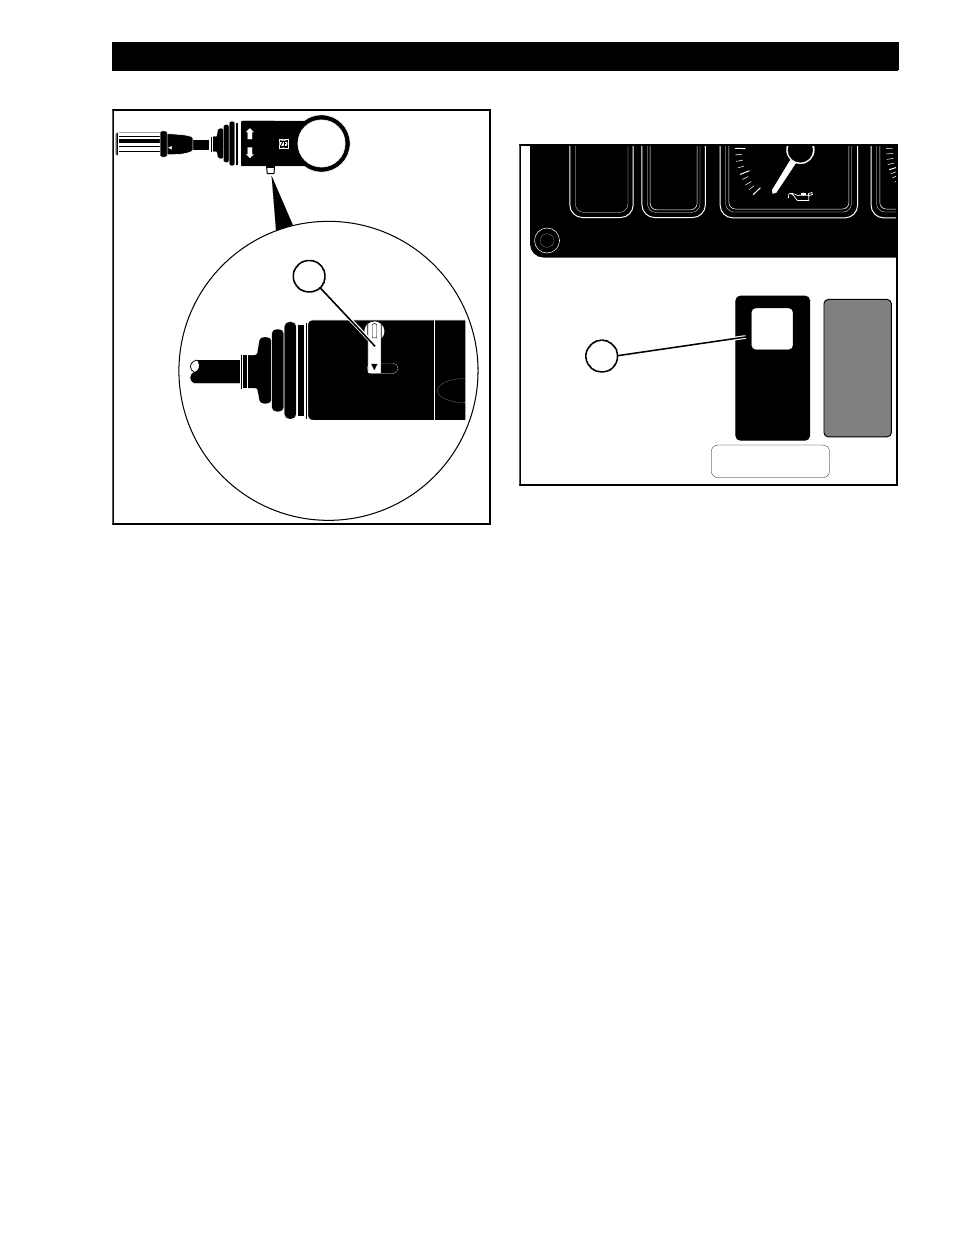 fork lift alternator wiring diagram